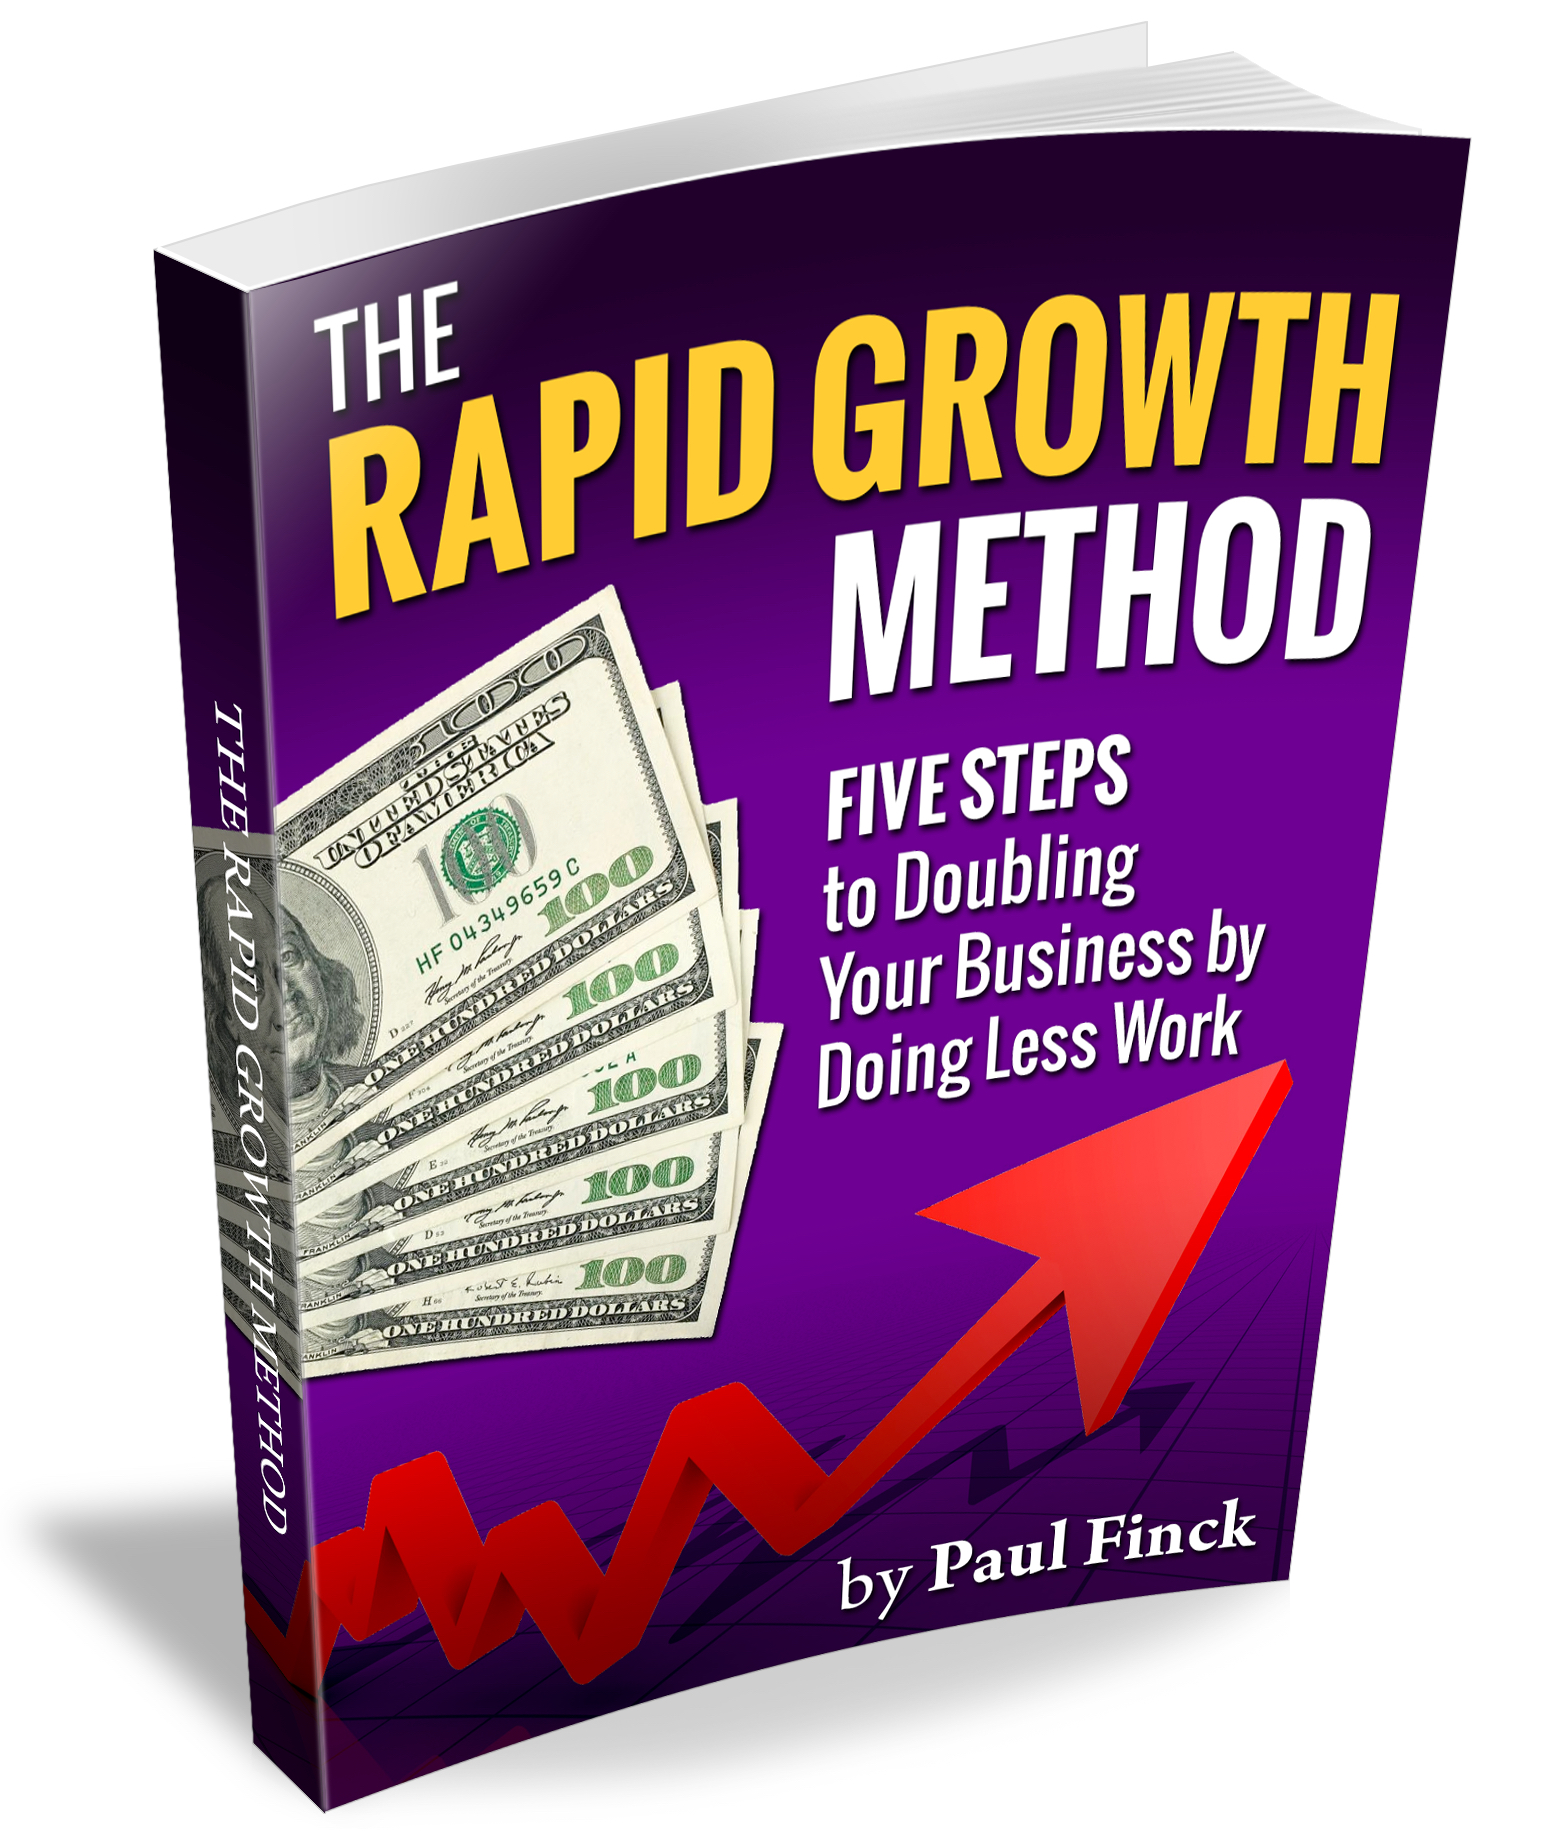 Paul Finck's Rapid Growth Method - Double Your Income In 5 Easy Steps